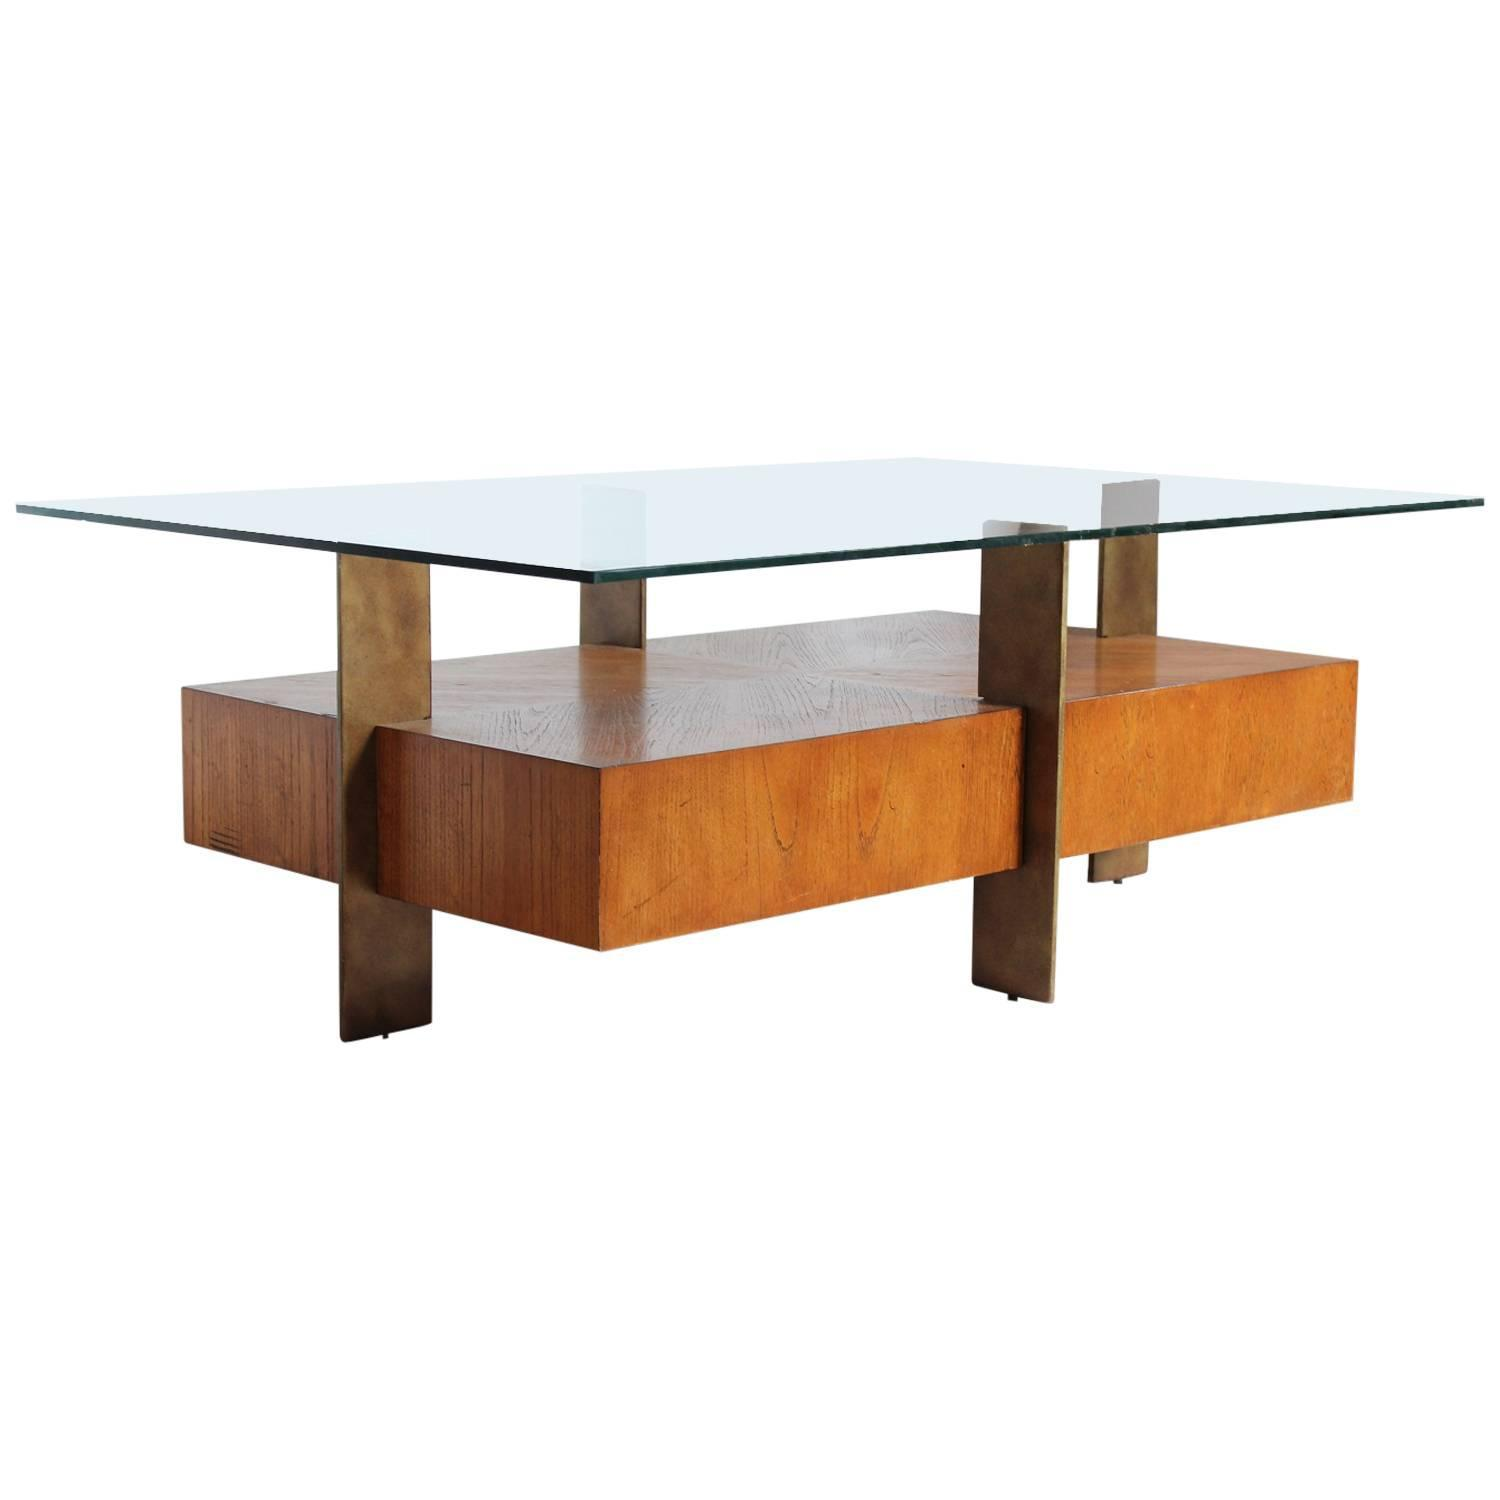 Marvelous photograph of Modern Wood and Metal Coffee Table with Glass Top For Sale at 1stdibs with #A75F24 color and 1500x1500 pixels